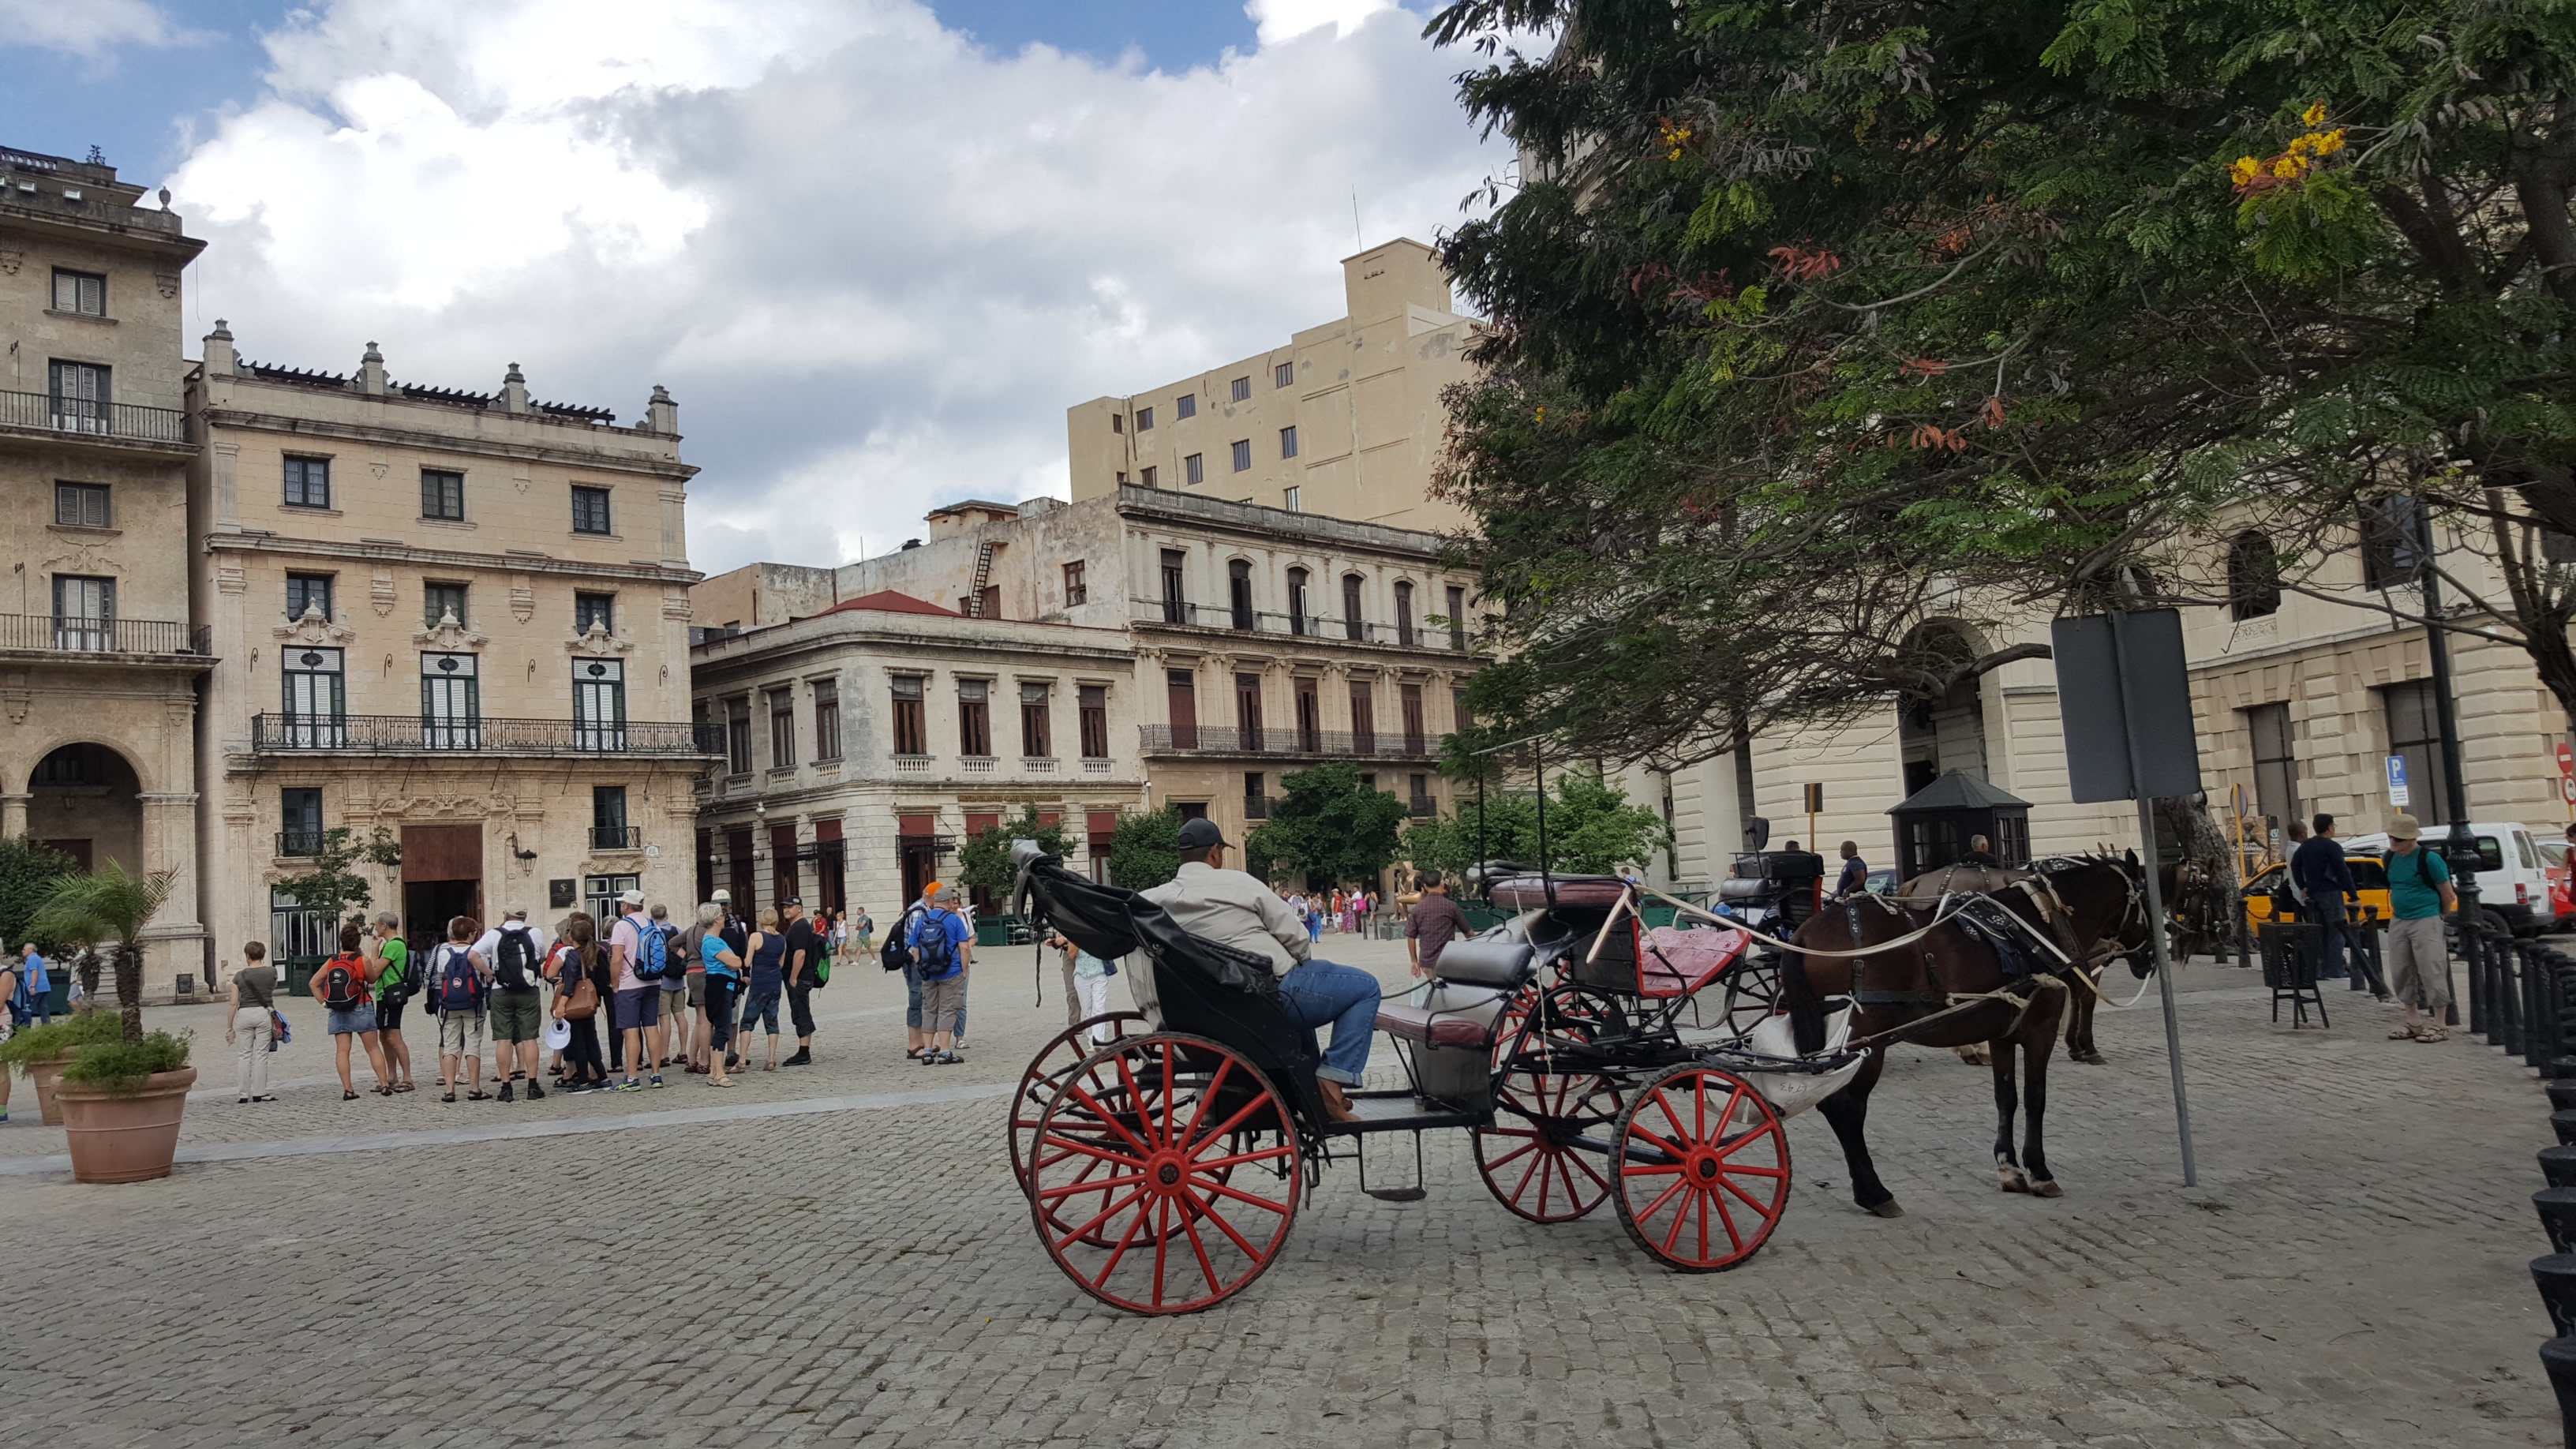 Things I Learned on My Trip to Cuba – Havana Trip Summary